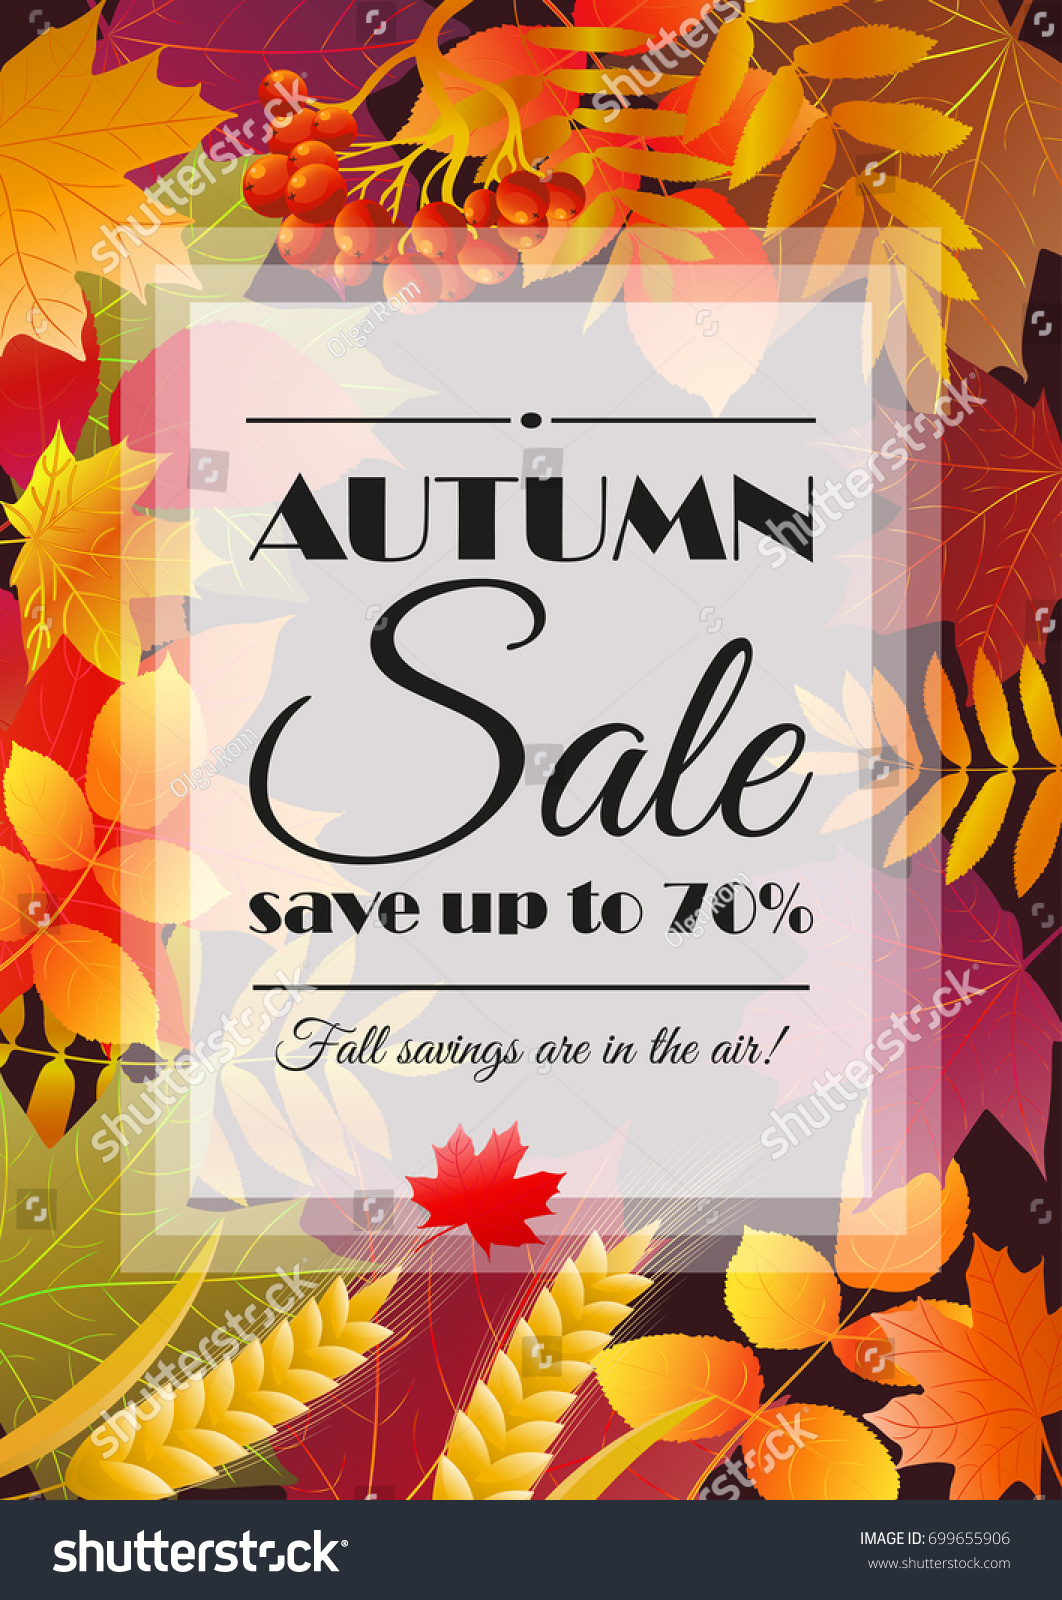 Autumn Sale Poster, Flyer, Card Template With Typography. Bright Fall Maple  Leaves,